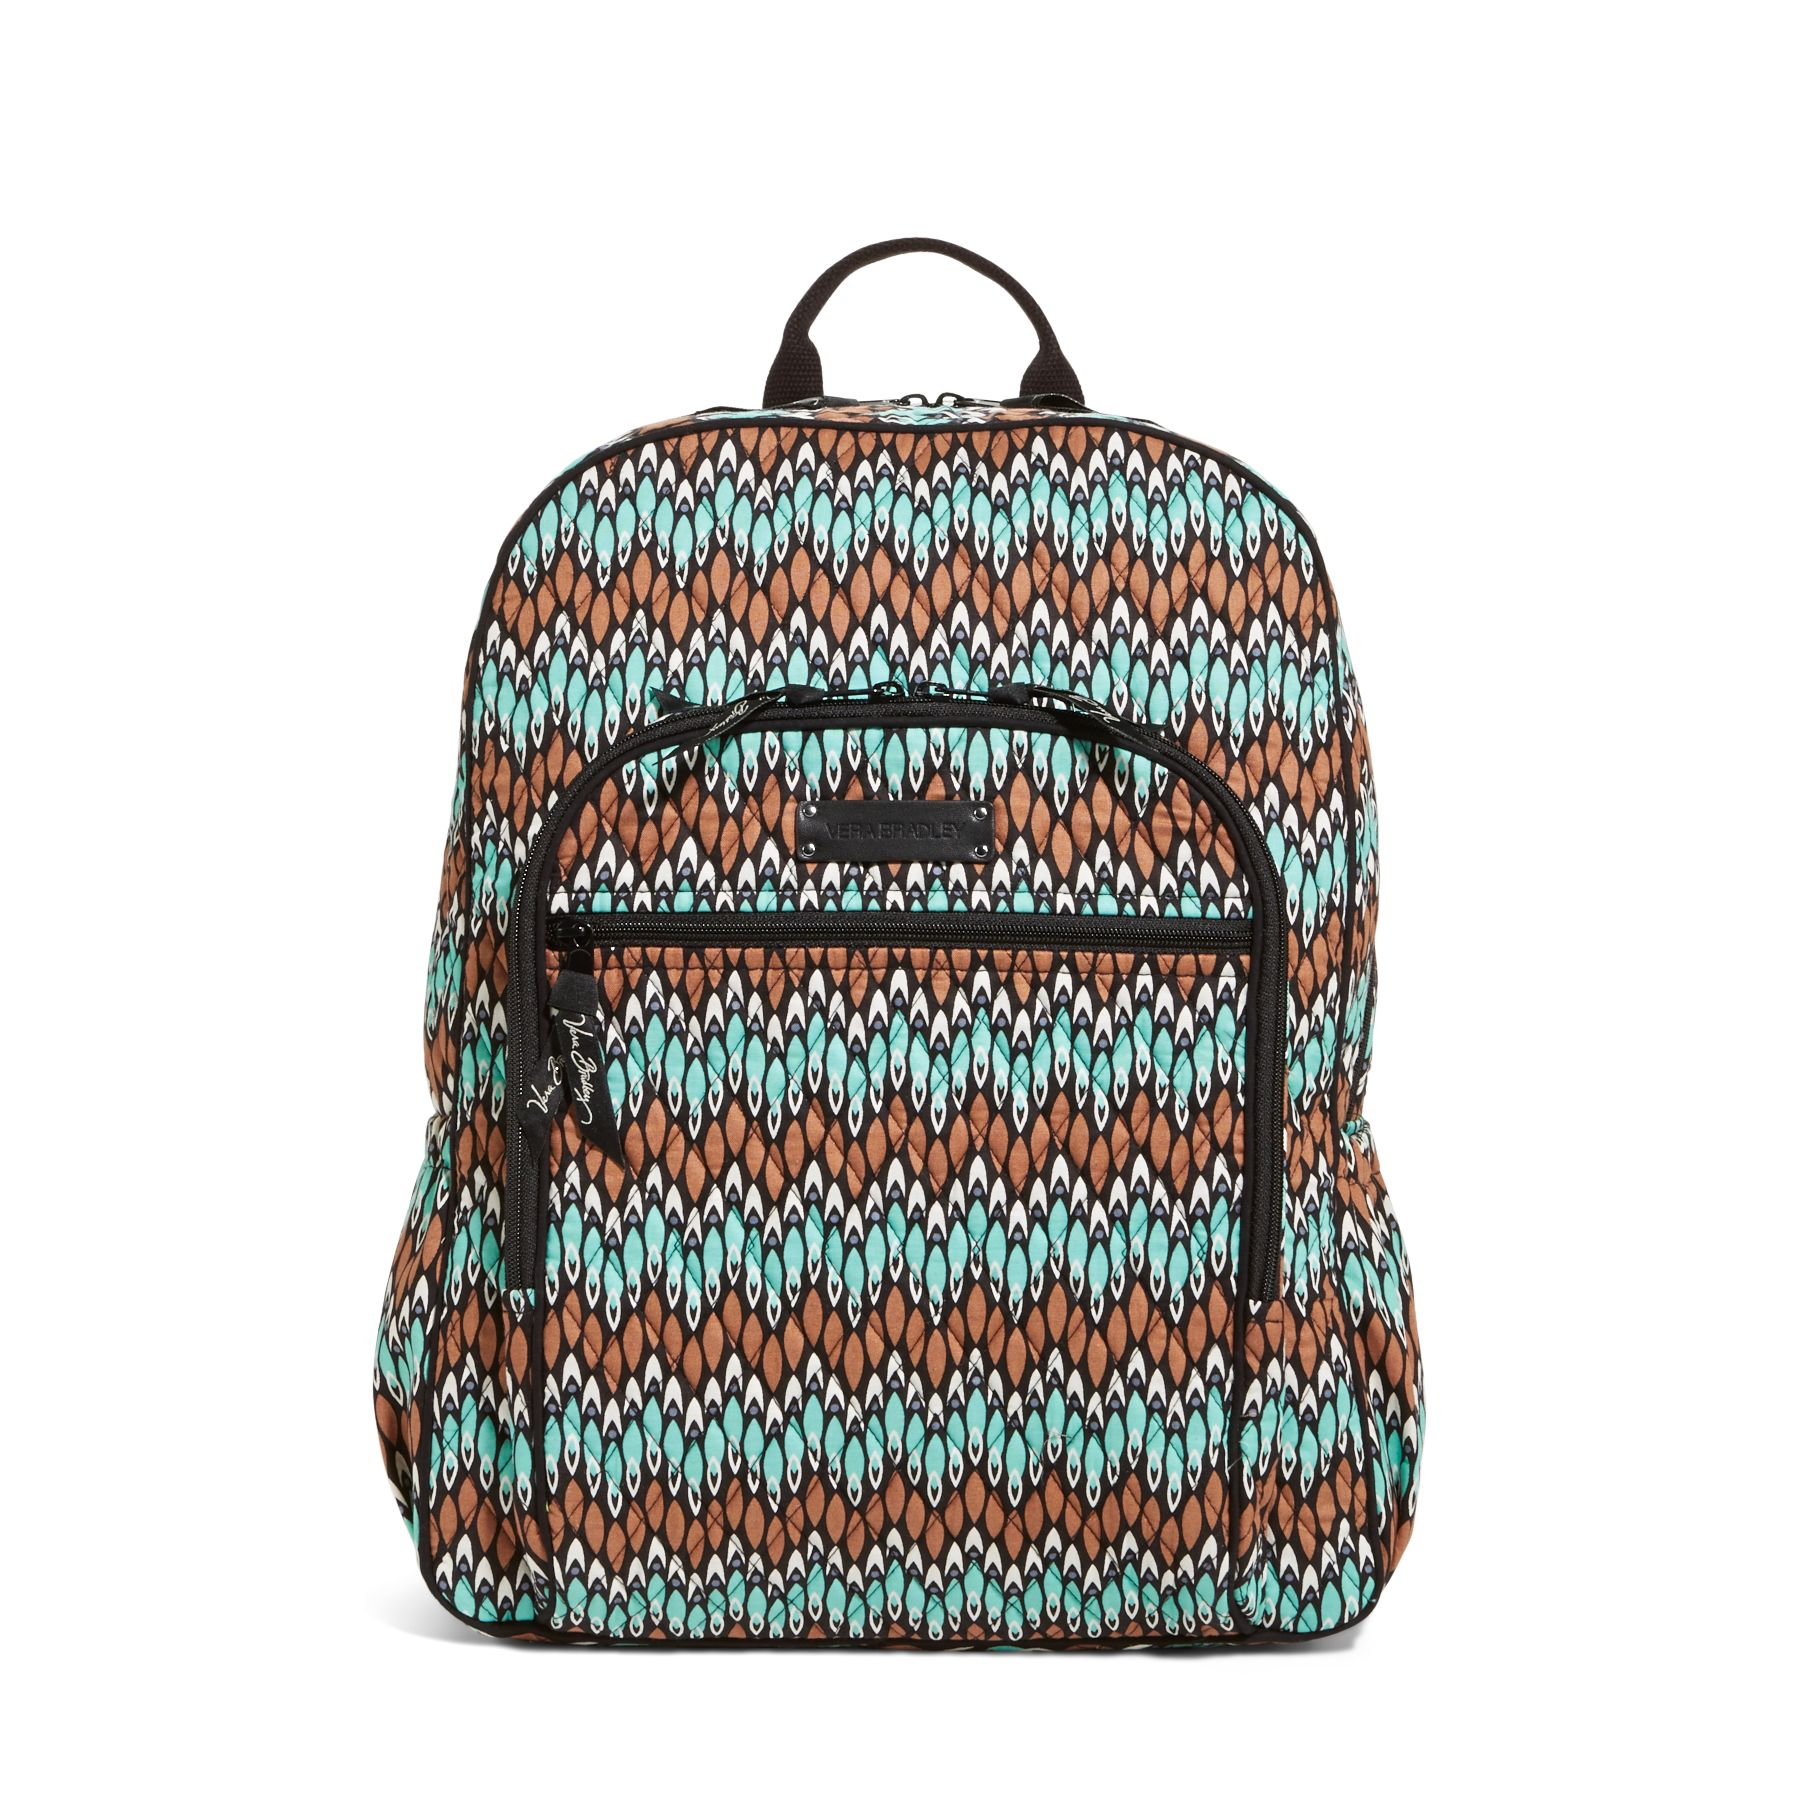 Vera Bradley Outlet Small Backpack- Fenix Toulouse Handball 6adcb0616b898